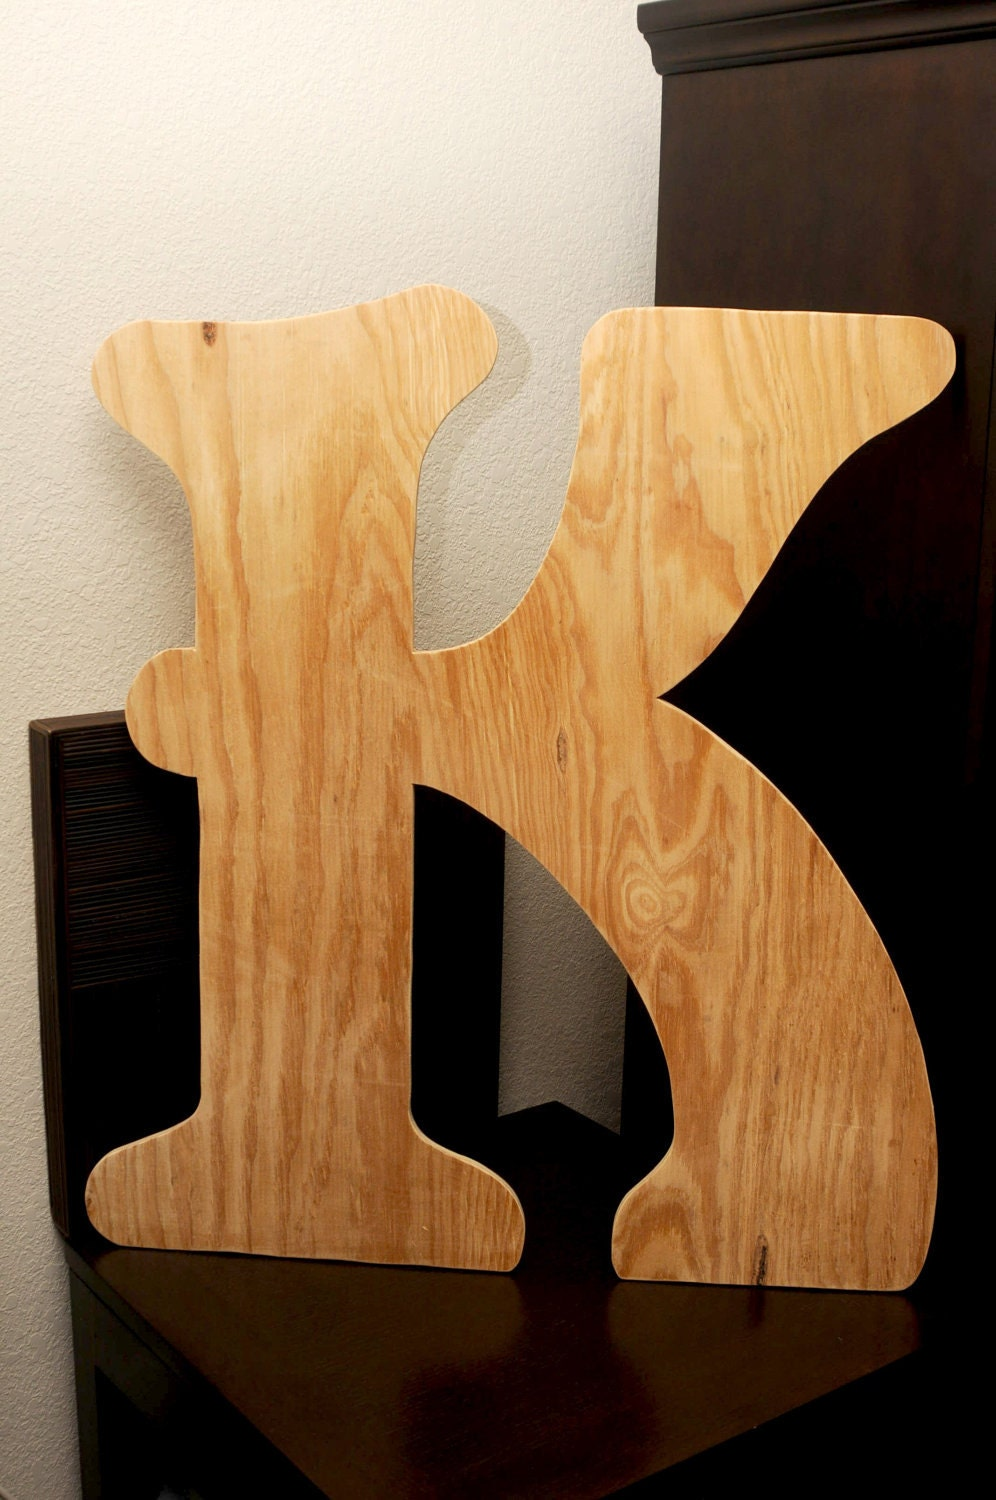 Large wooden letter k 36 inch unfinished by for 36 inch wooden letters